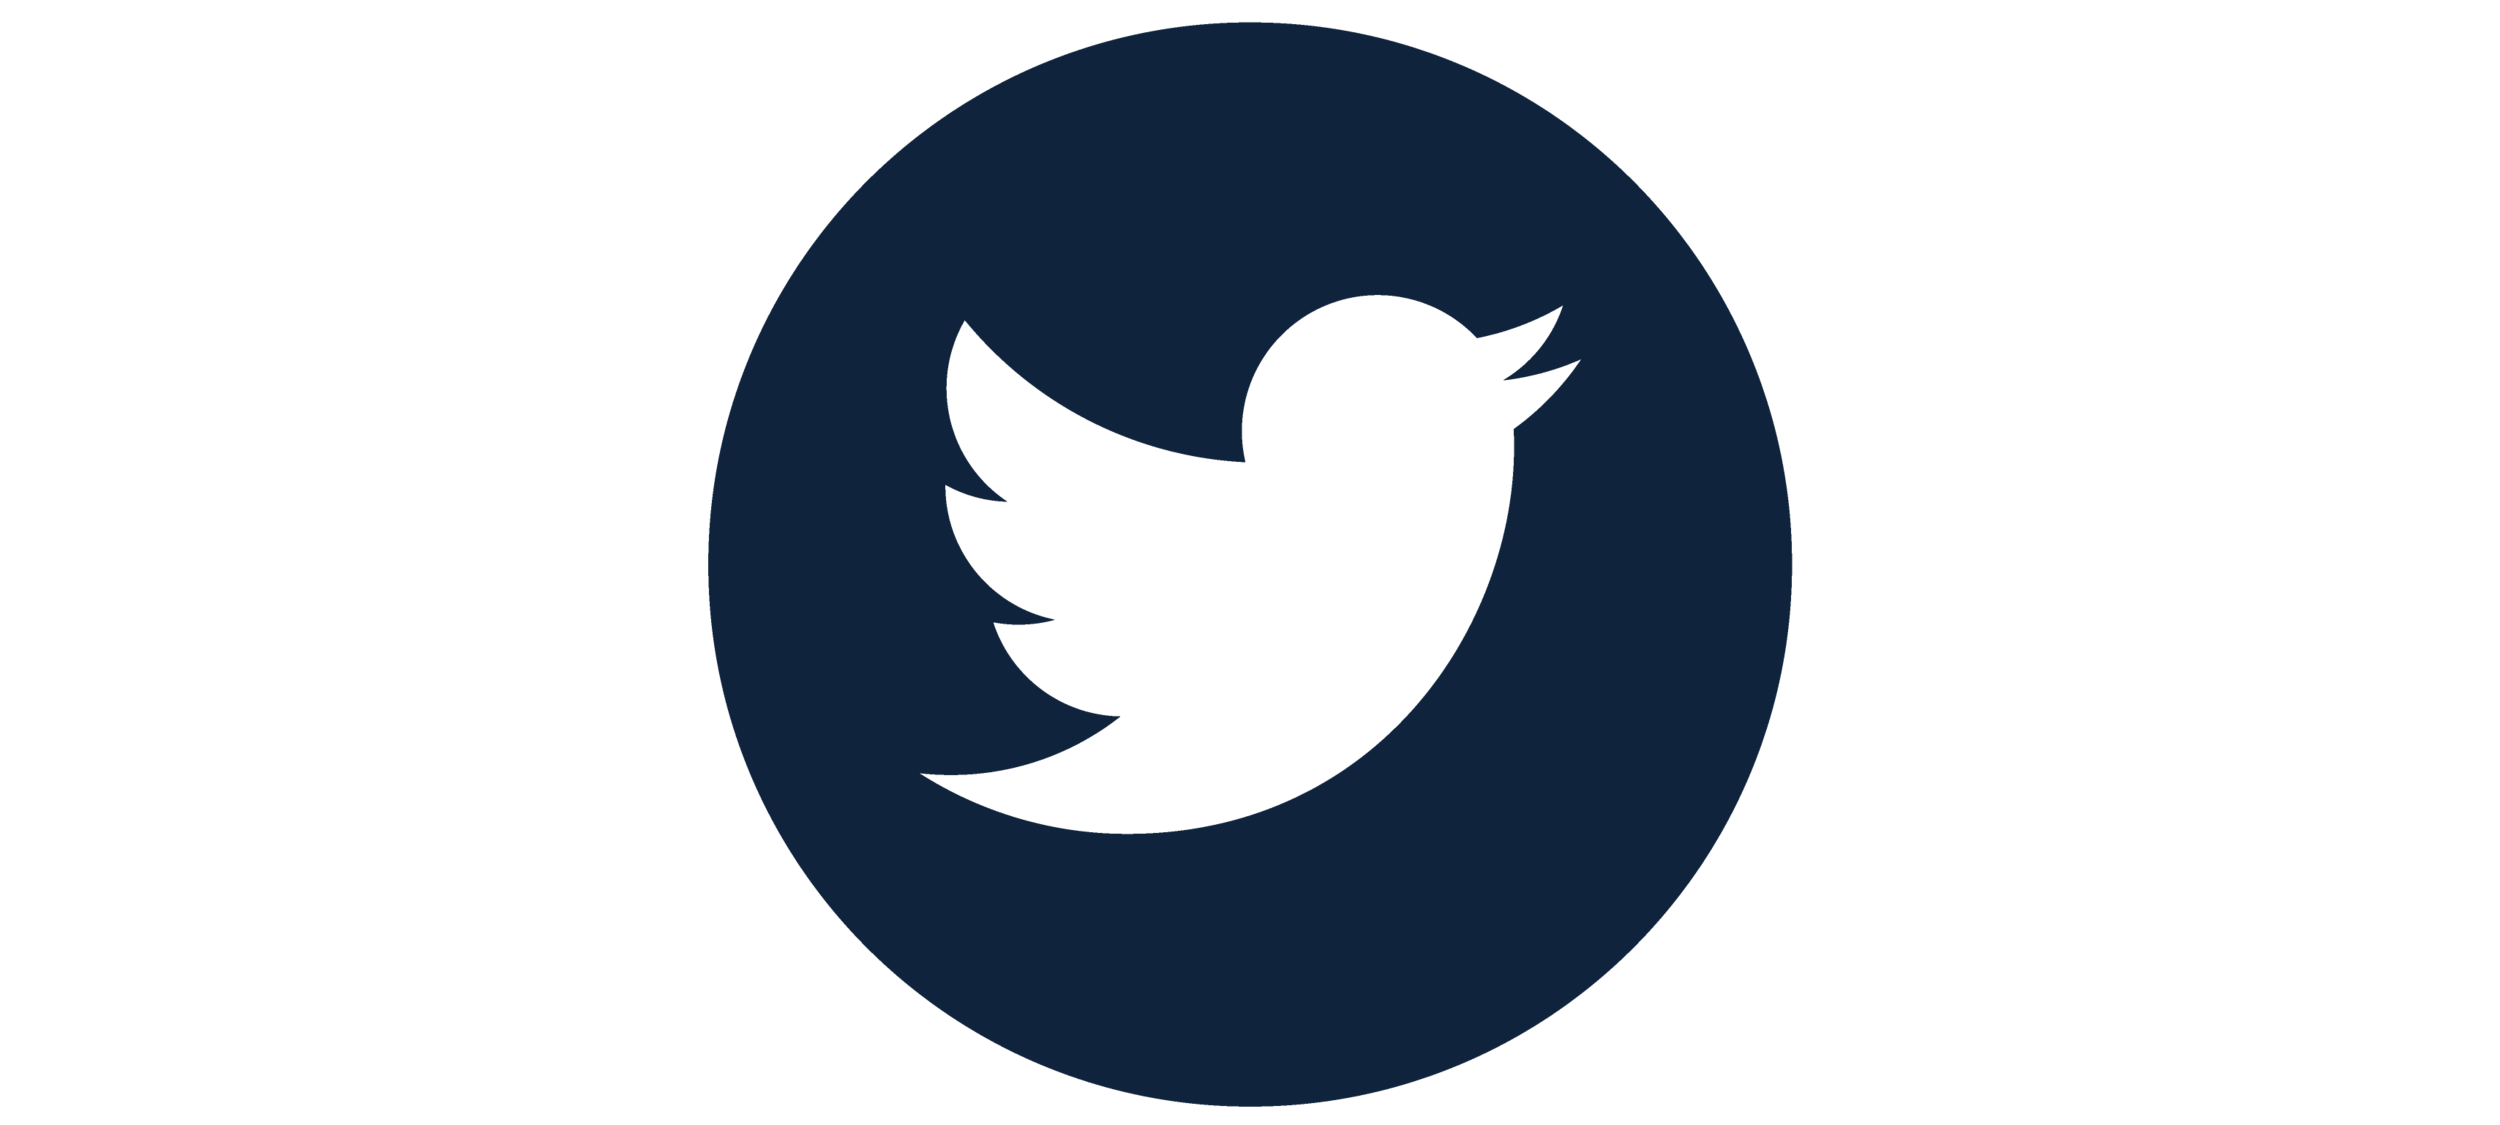 icon-twitter.png